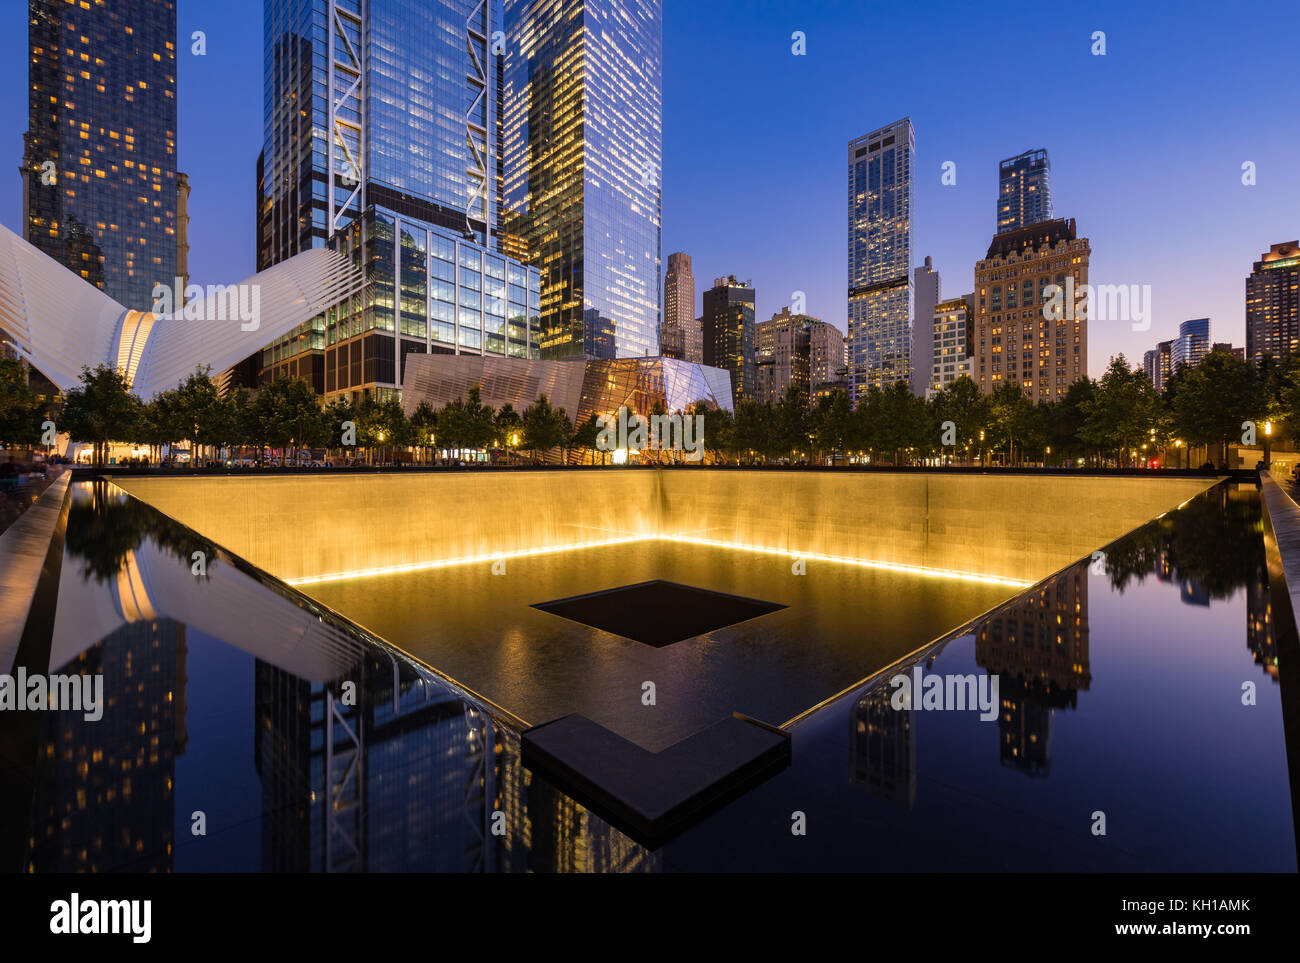 La piscina reflectante del Norte iluminado al atardecer con vista de la torre del World Trade Center 3 y 4 y el Imagen De Stock